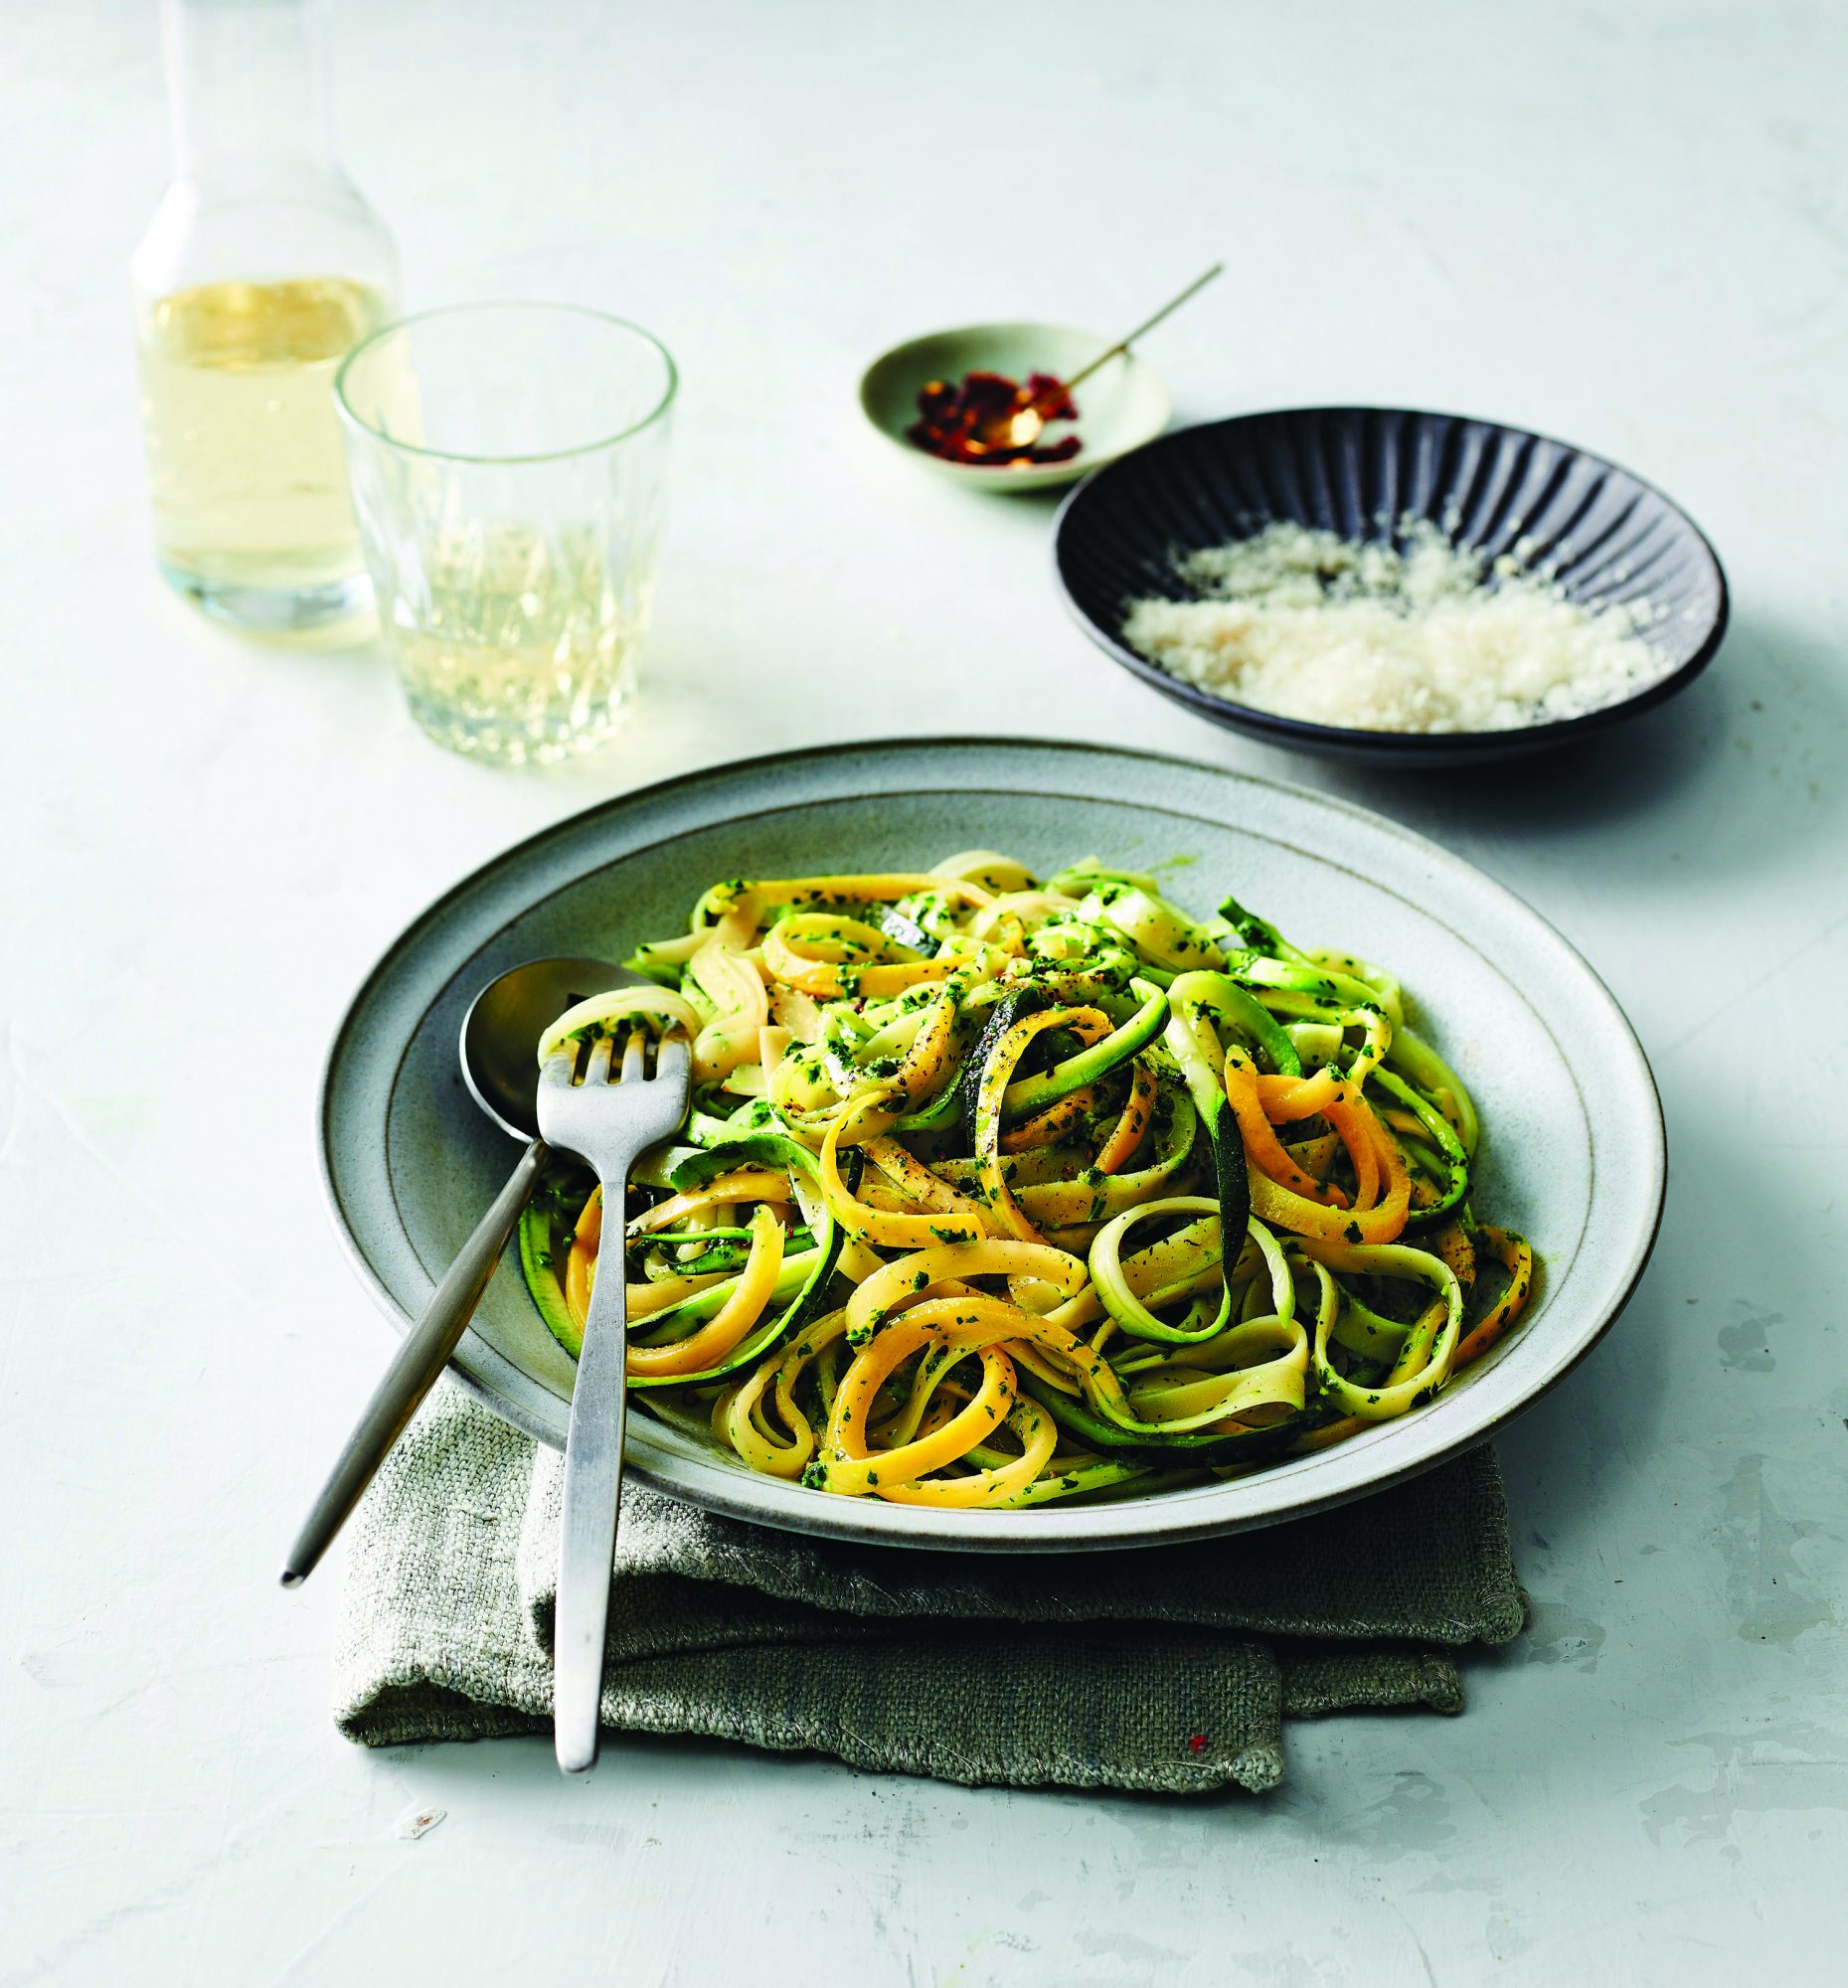 Fettuccine With Squash Noodles & Kale Pesto